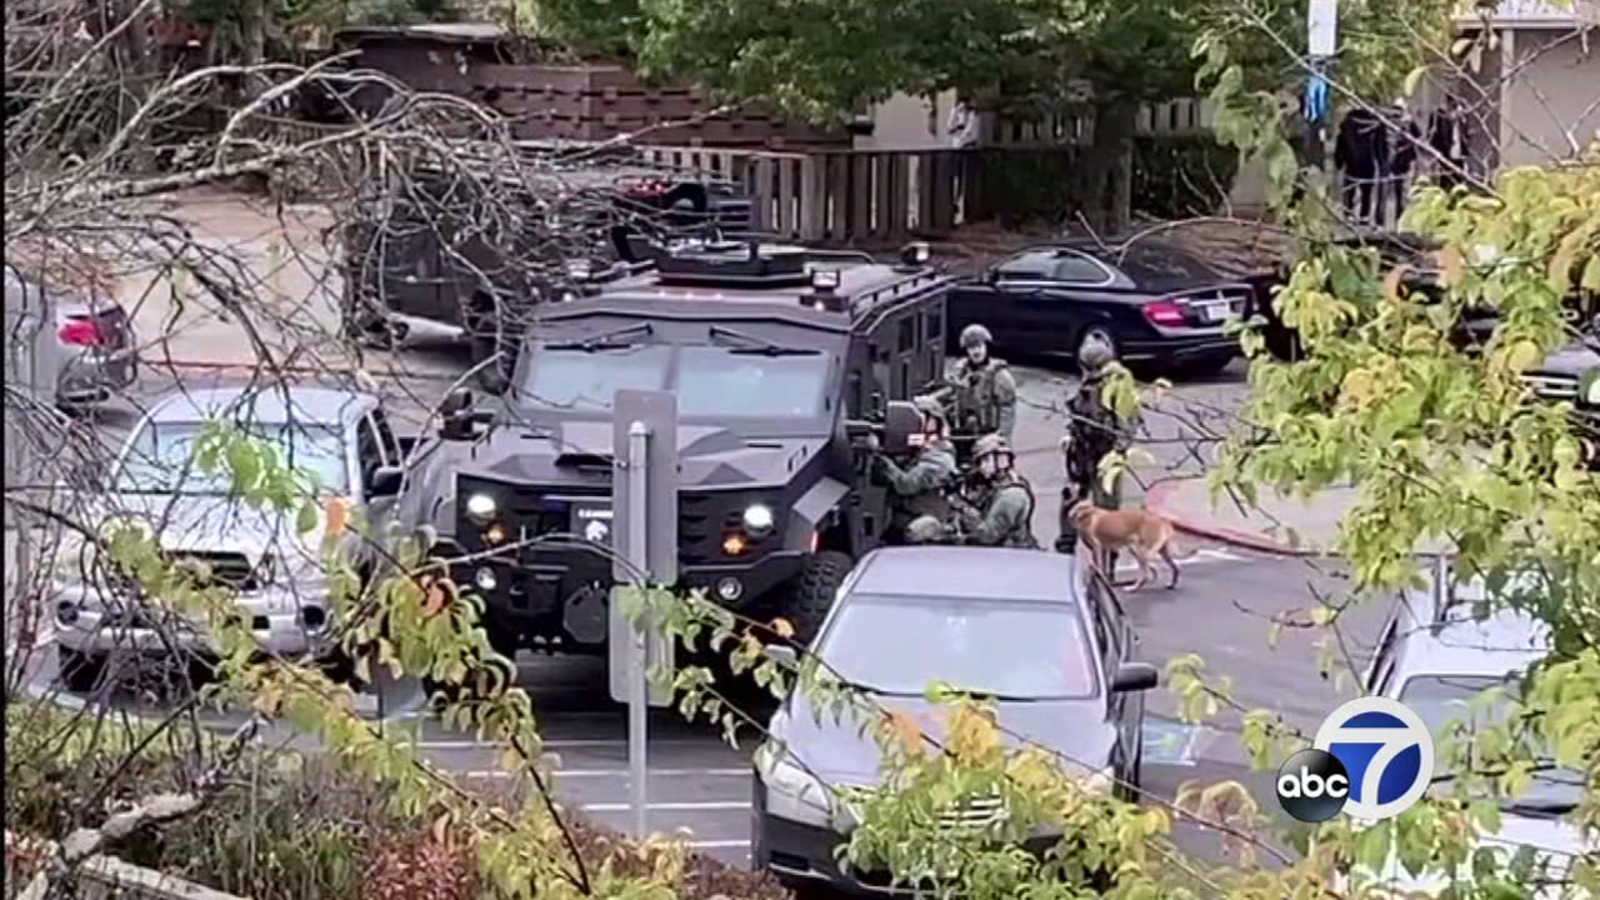 5 Suspects Arrested In Connection With Deadly Shooting At Orinda